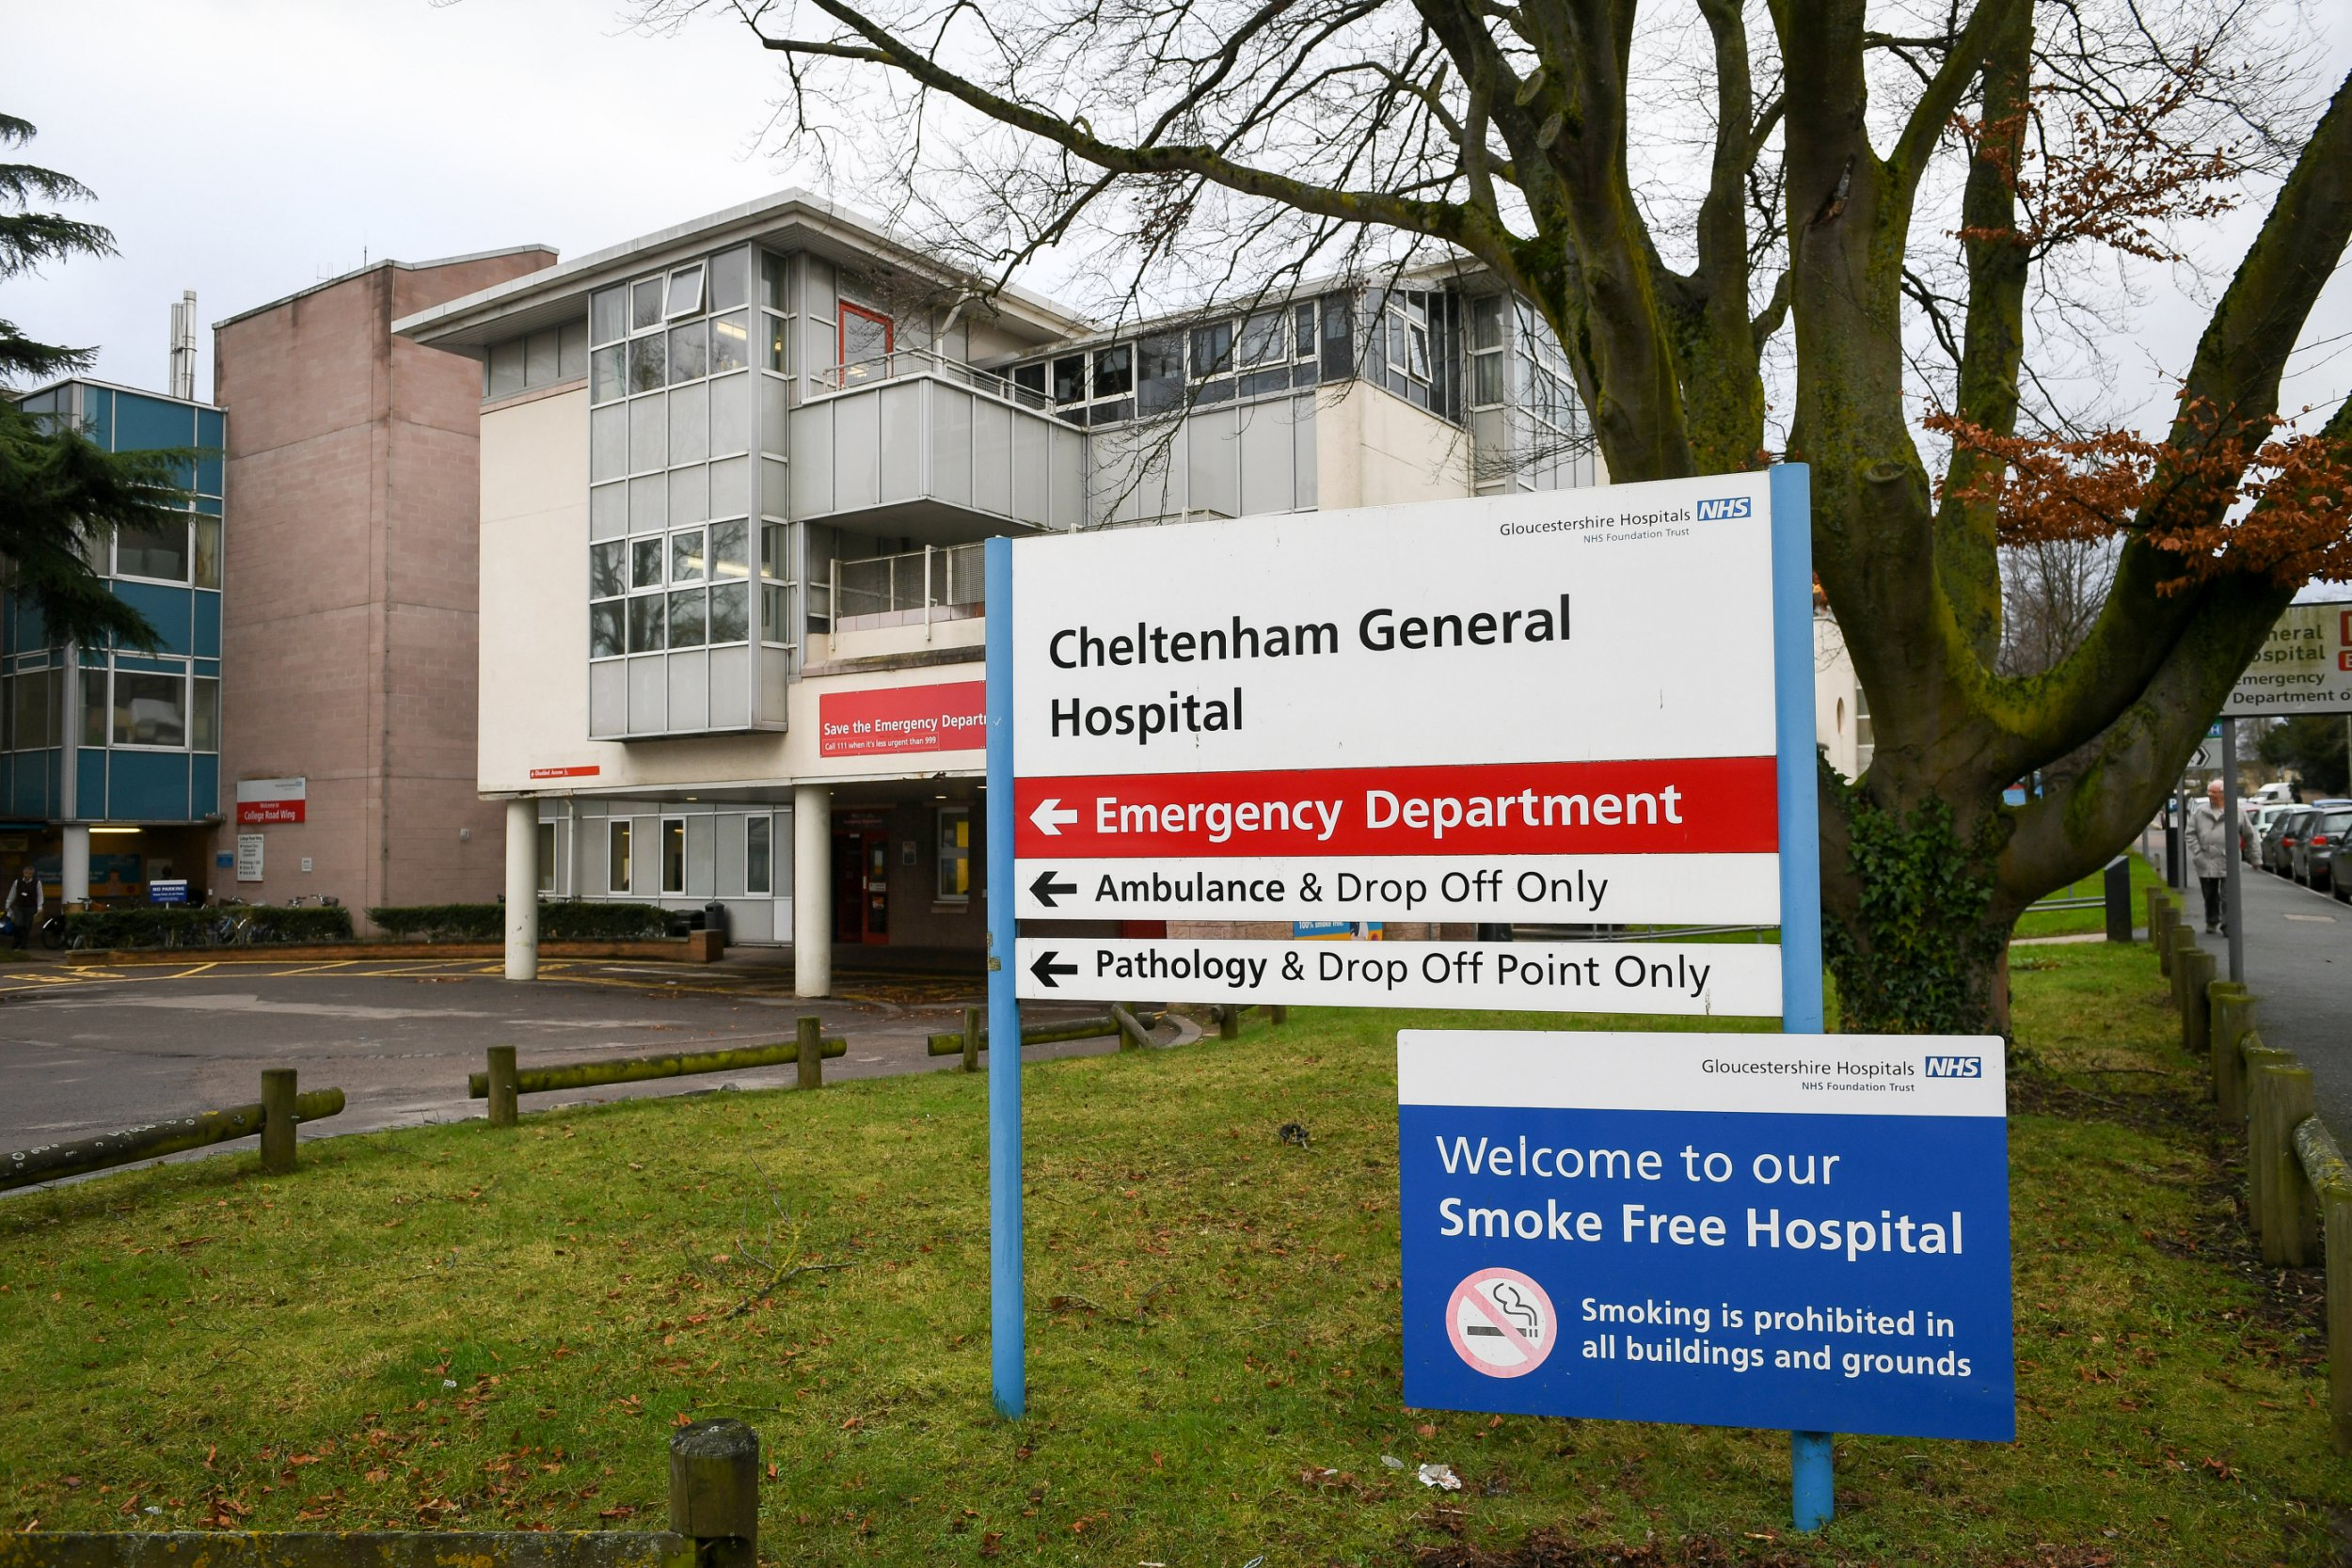 Hospital ward evacuated after human faeces falls on patient from ceiling